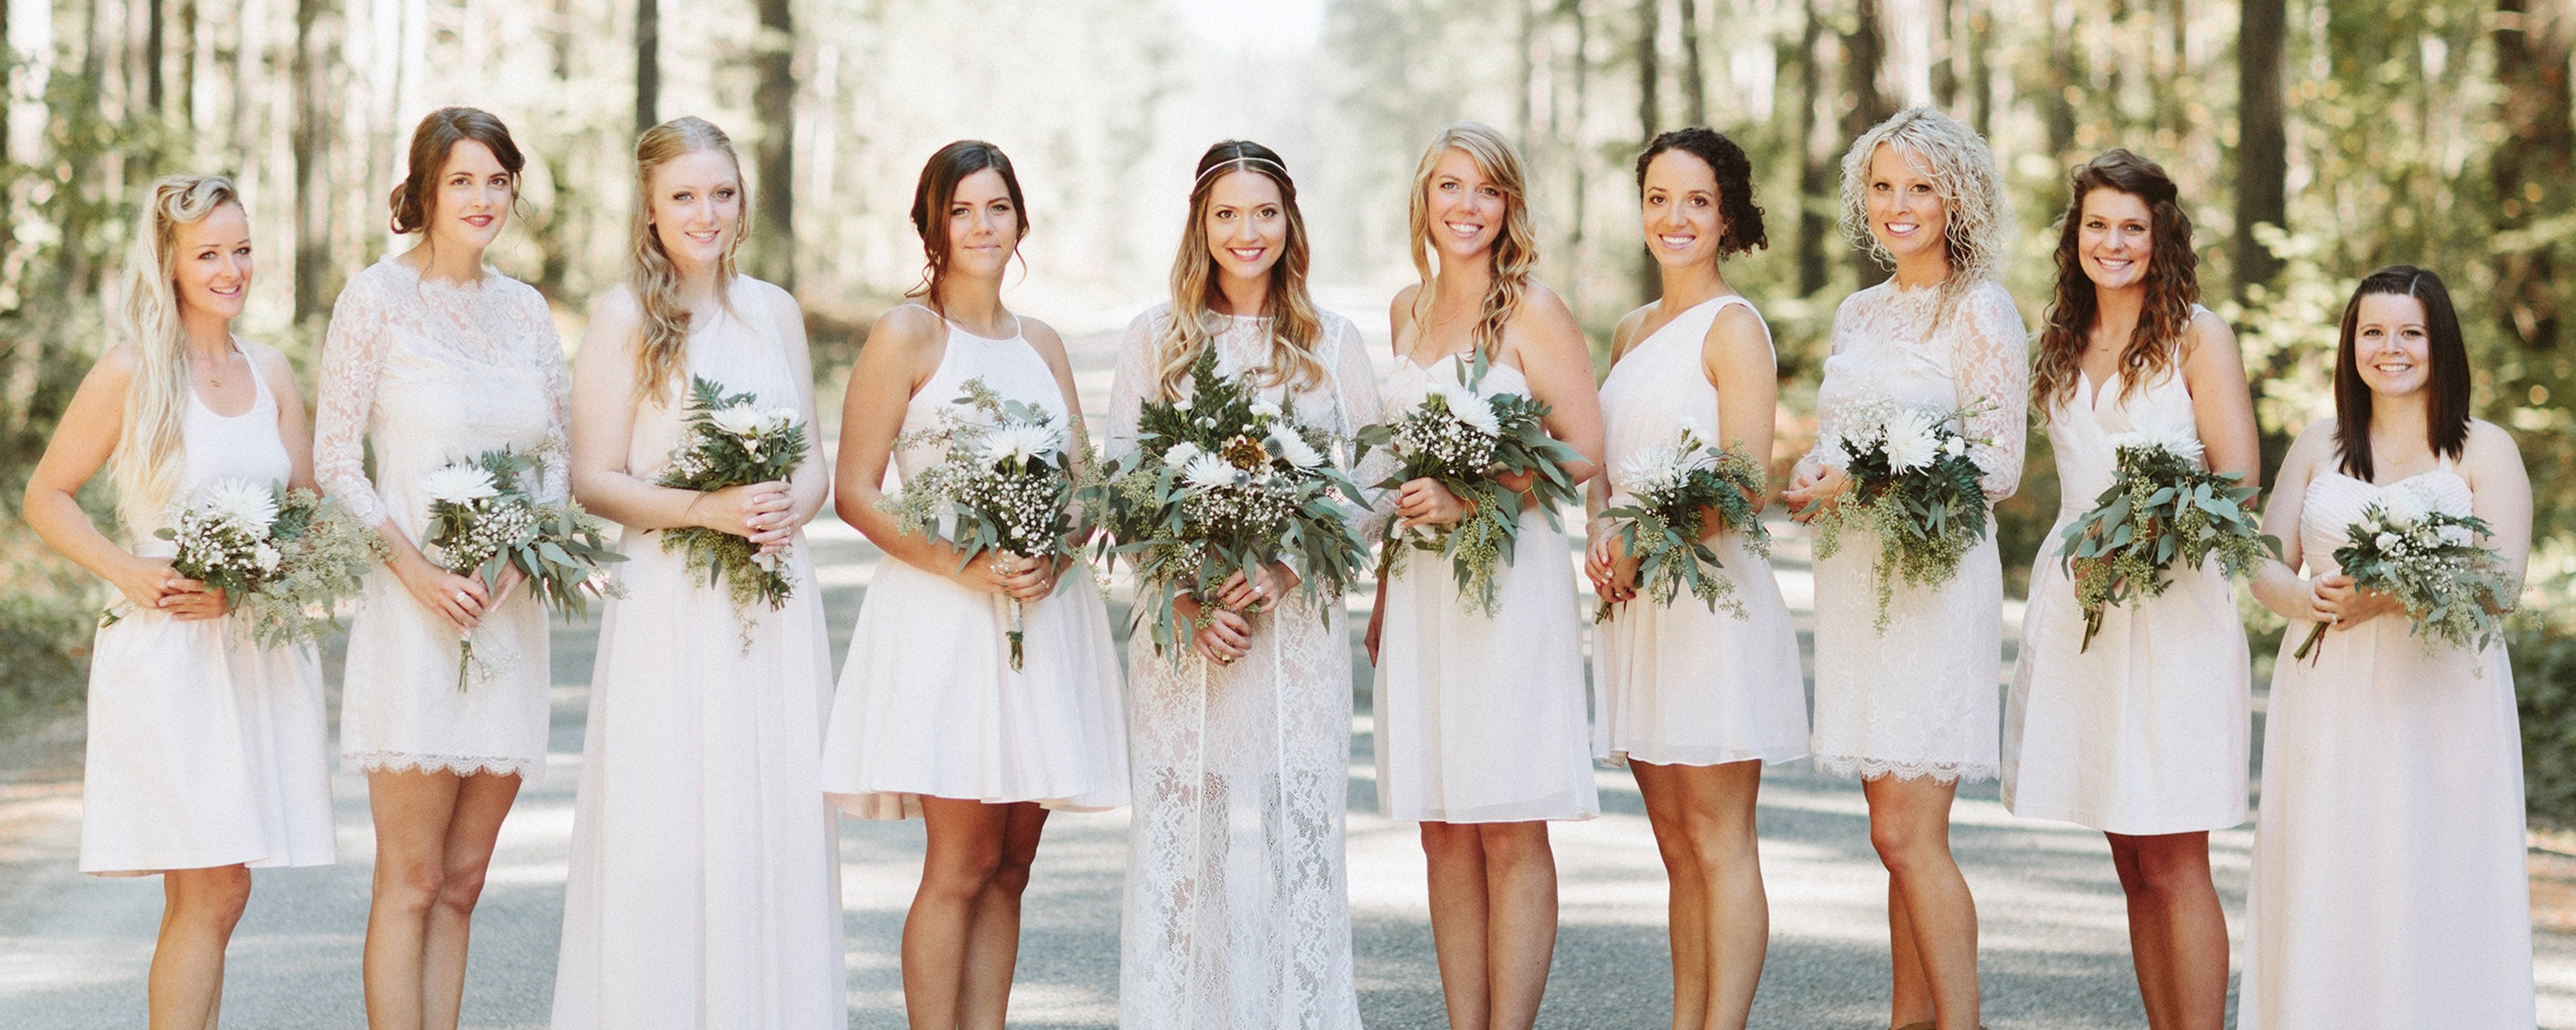 Wedgewood Weddings Bridesmaids Dresses and Attire - Weddington Way